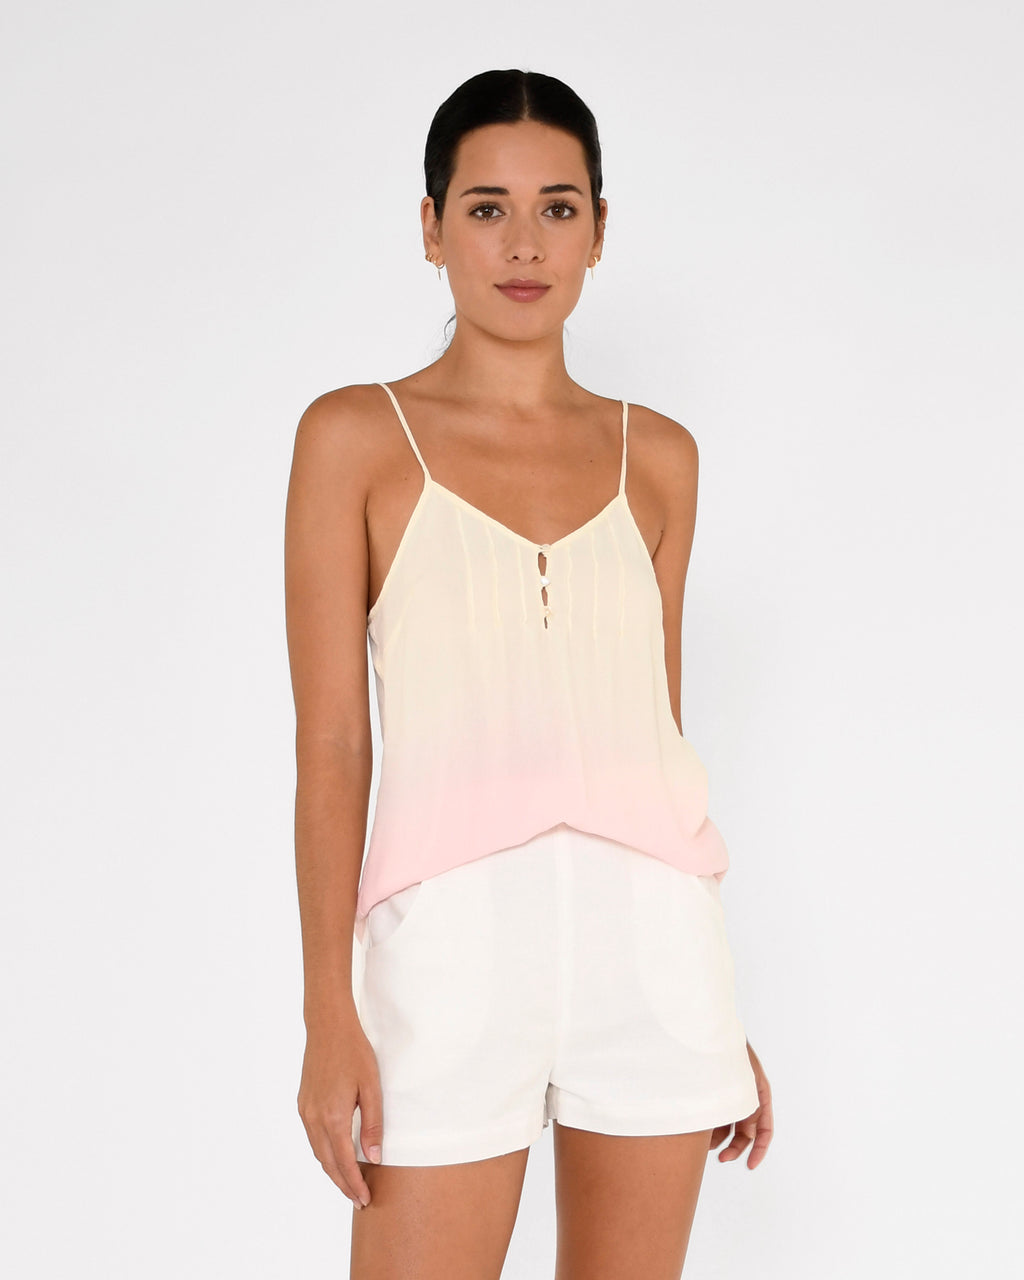 CT18963 - SORBET DIP DYE CAMI - tops - blouses - This delicate cami is hand dyed in our pastel sorbet dip dye and features thin adjustable straps and pearl buttons. Add 1 line break Stylist Tip: Pair with a white denim jacket on cooler spring nights.